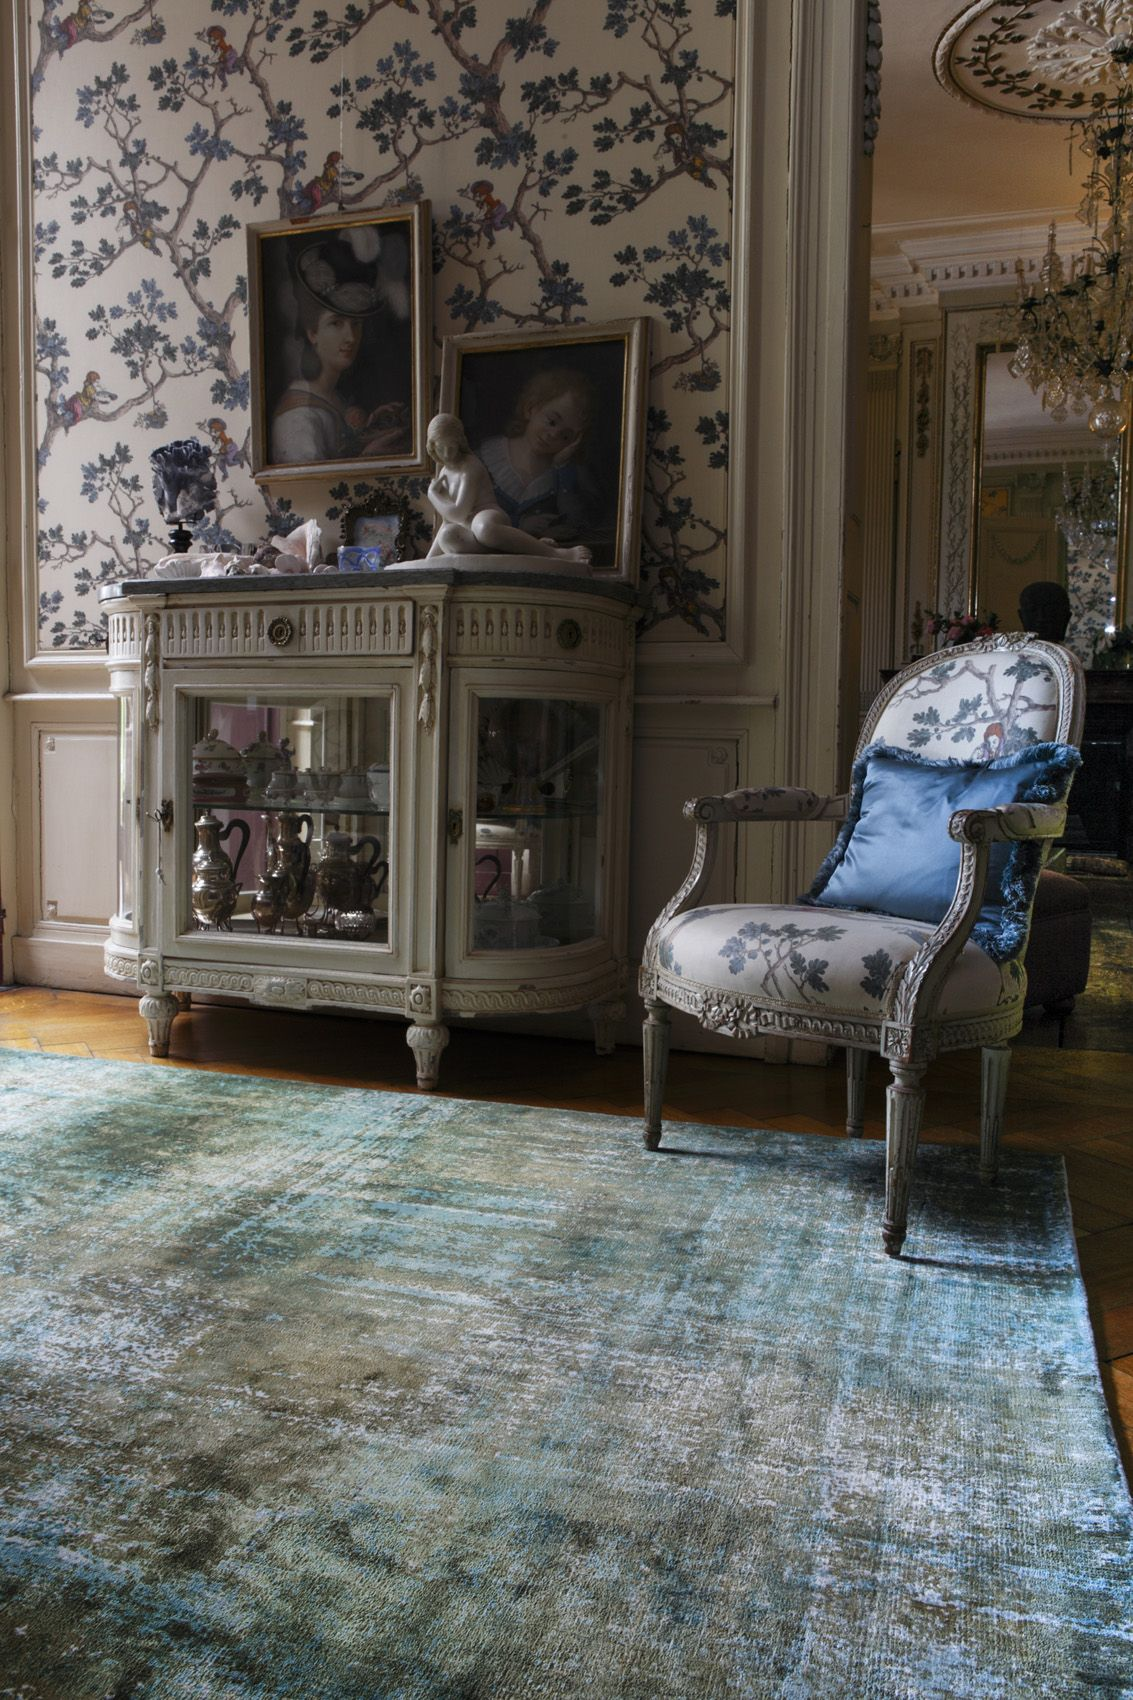 Design de tapis contemporains - Serge LESAGE